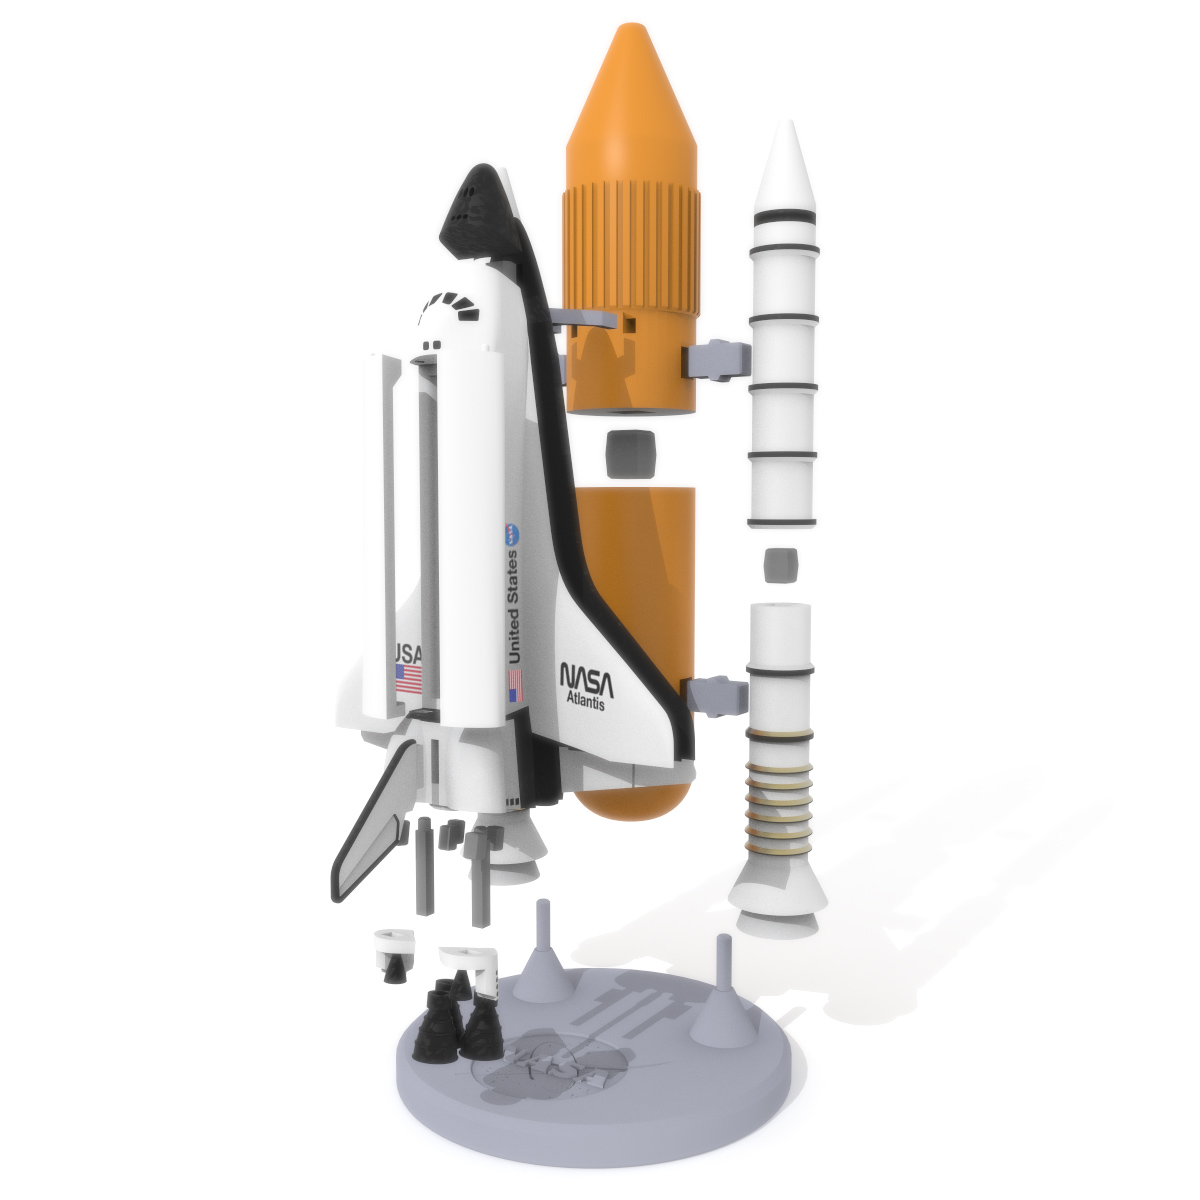 Space Shuttle Discovery Exploded, 3D Printer Models